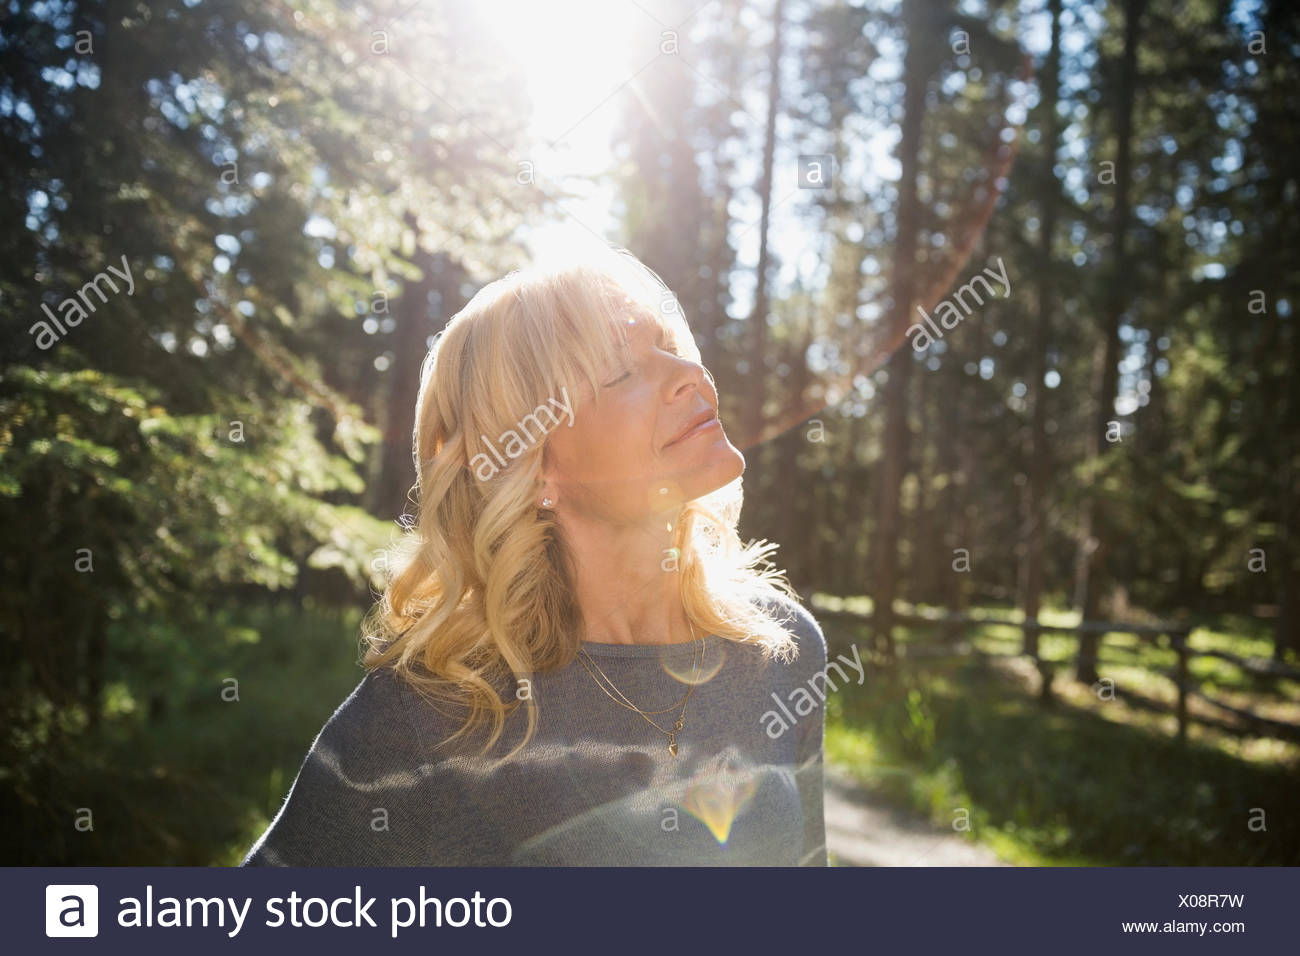 Serene blonde woman eyes closed in sunny woods - Stock Image